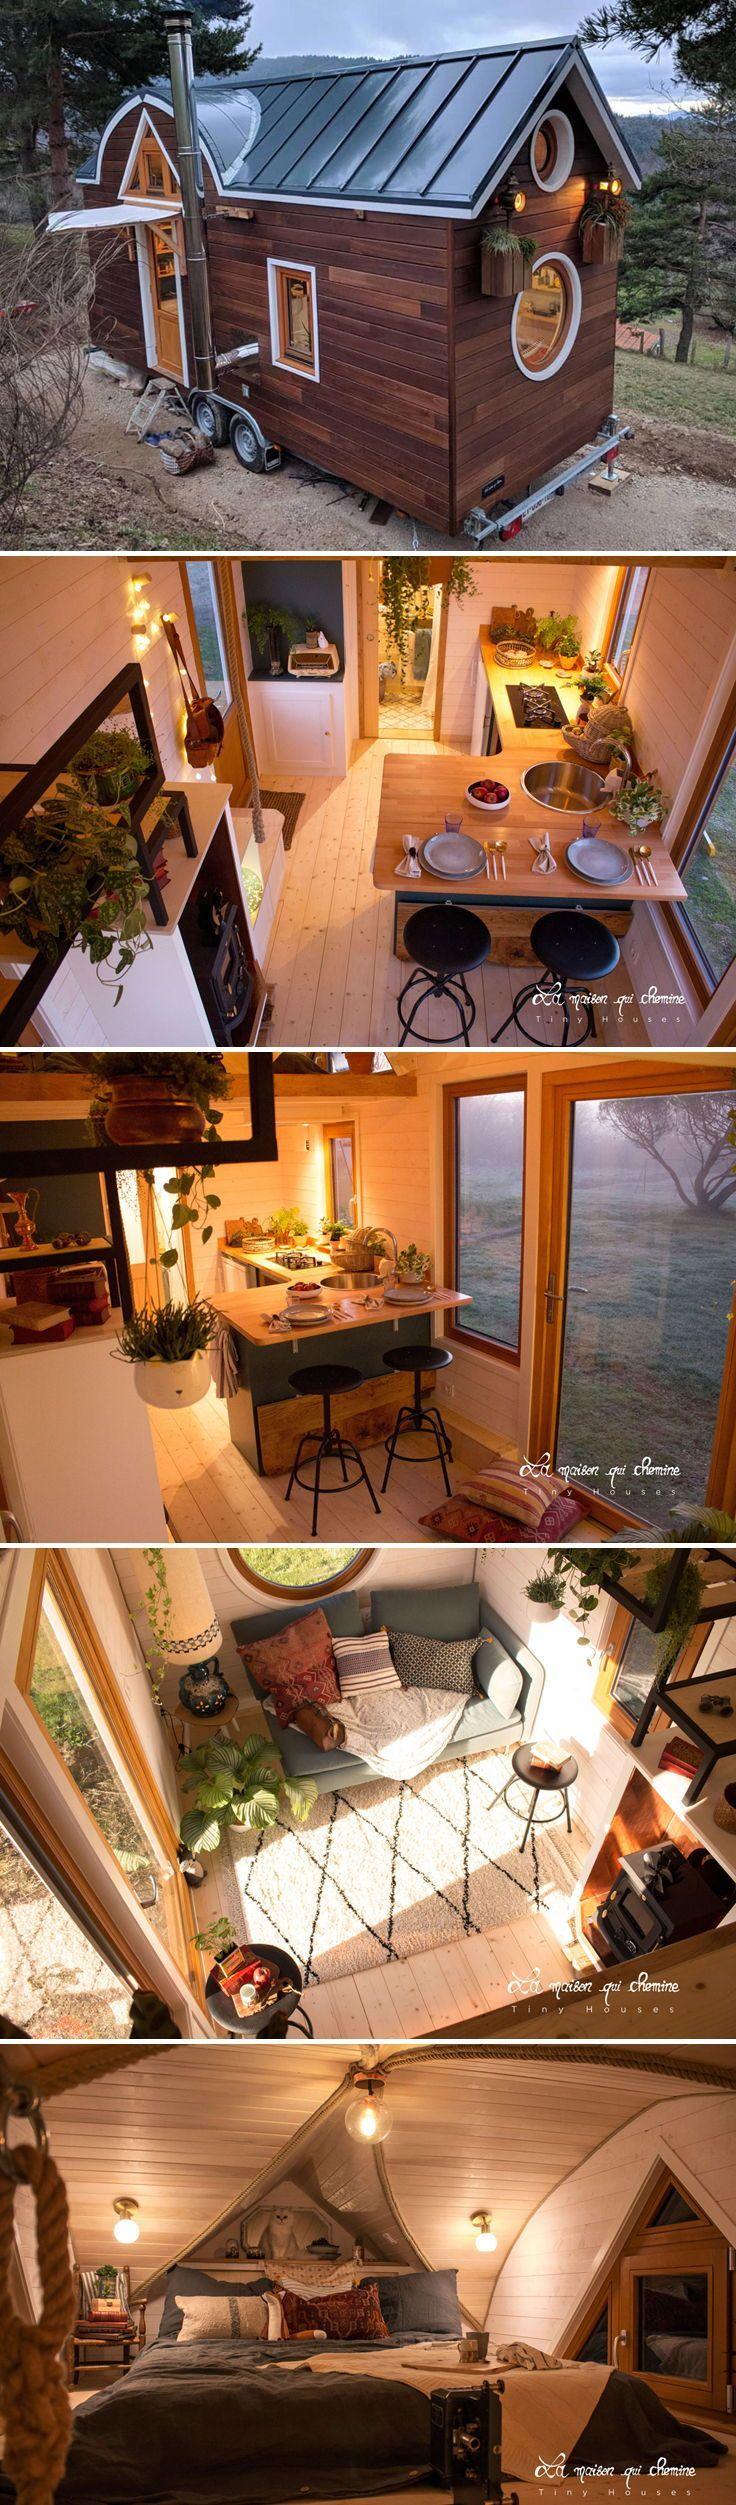 Flore is a beautiful 6-meter (~20-foot) tiny house built by French tiny home bui… #beautifularchitecture